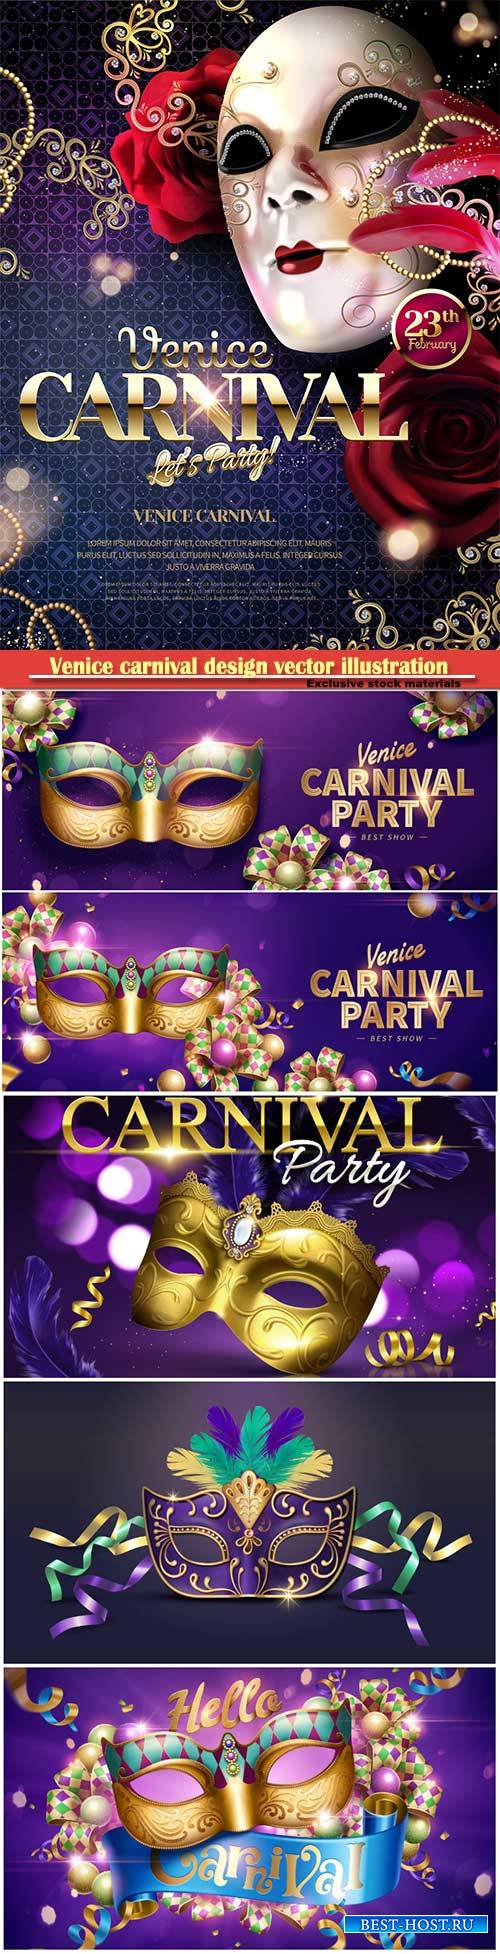 Venice carnival design vector illustration, Mardi gras # 6